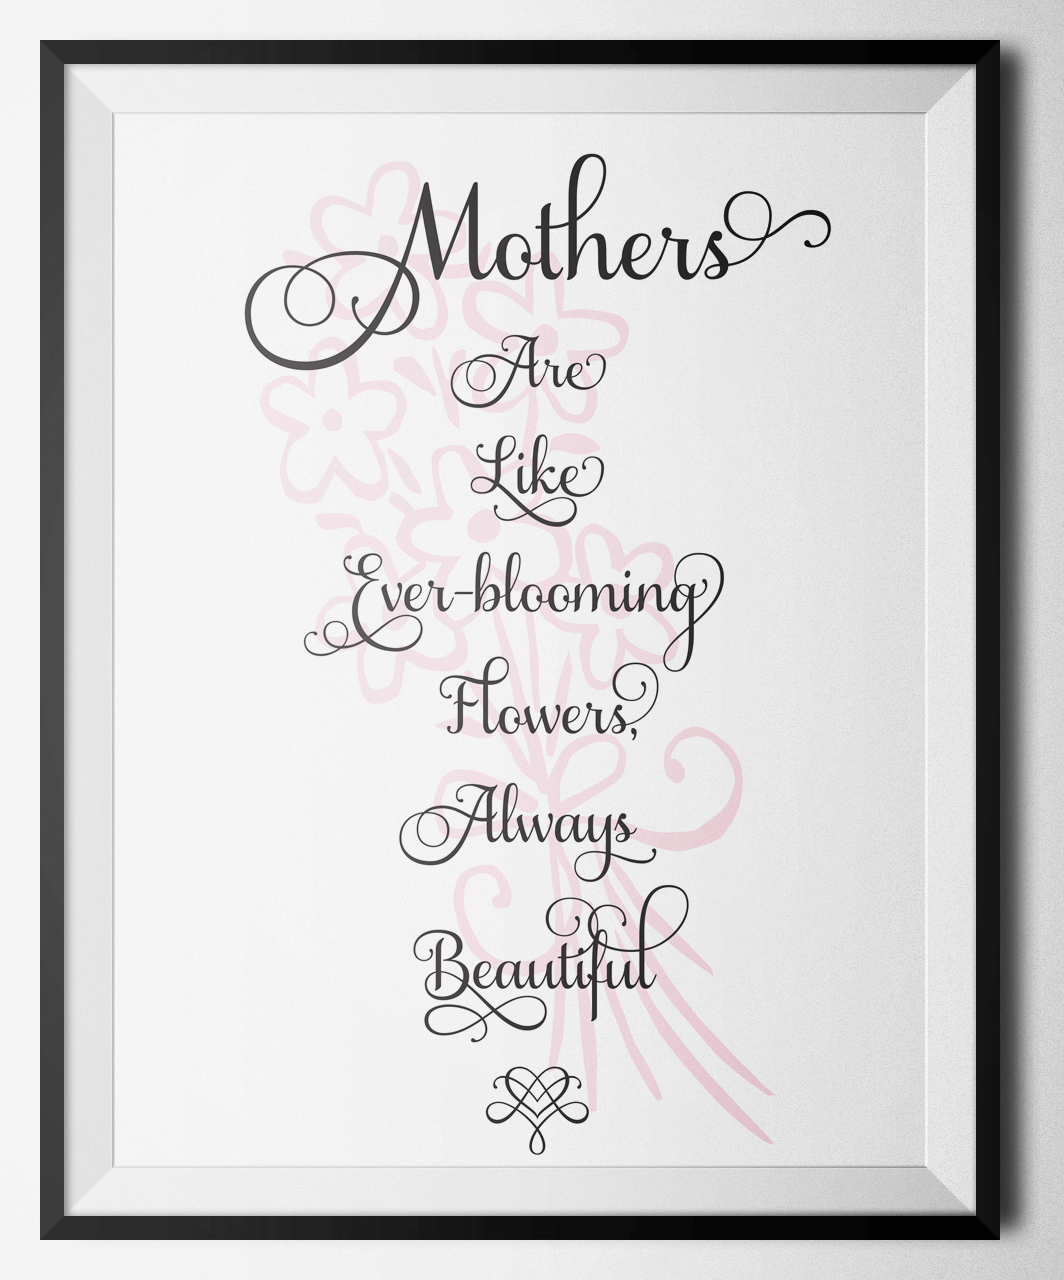 Learning Through Motherhood:  A Tribute and Birthday Message to My Mother + Printable Mother'a Day Art